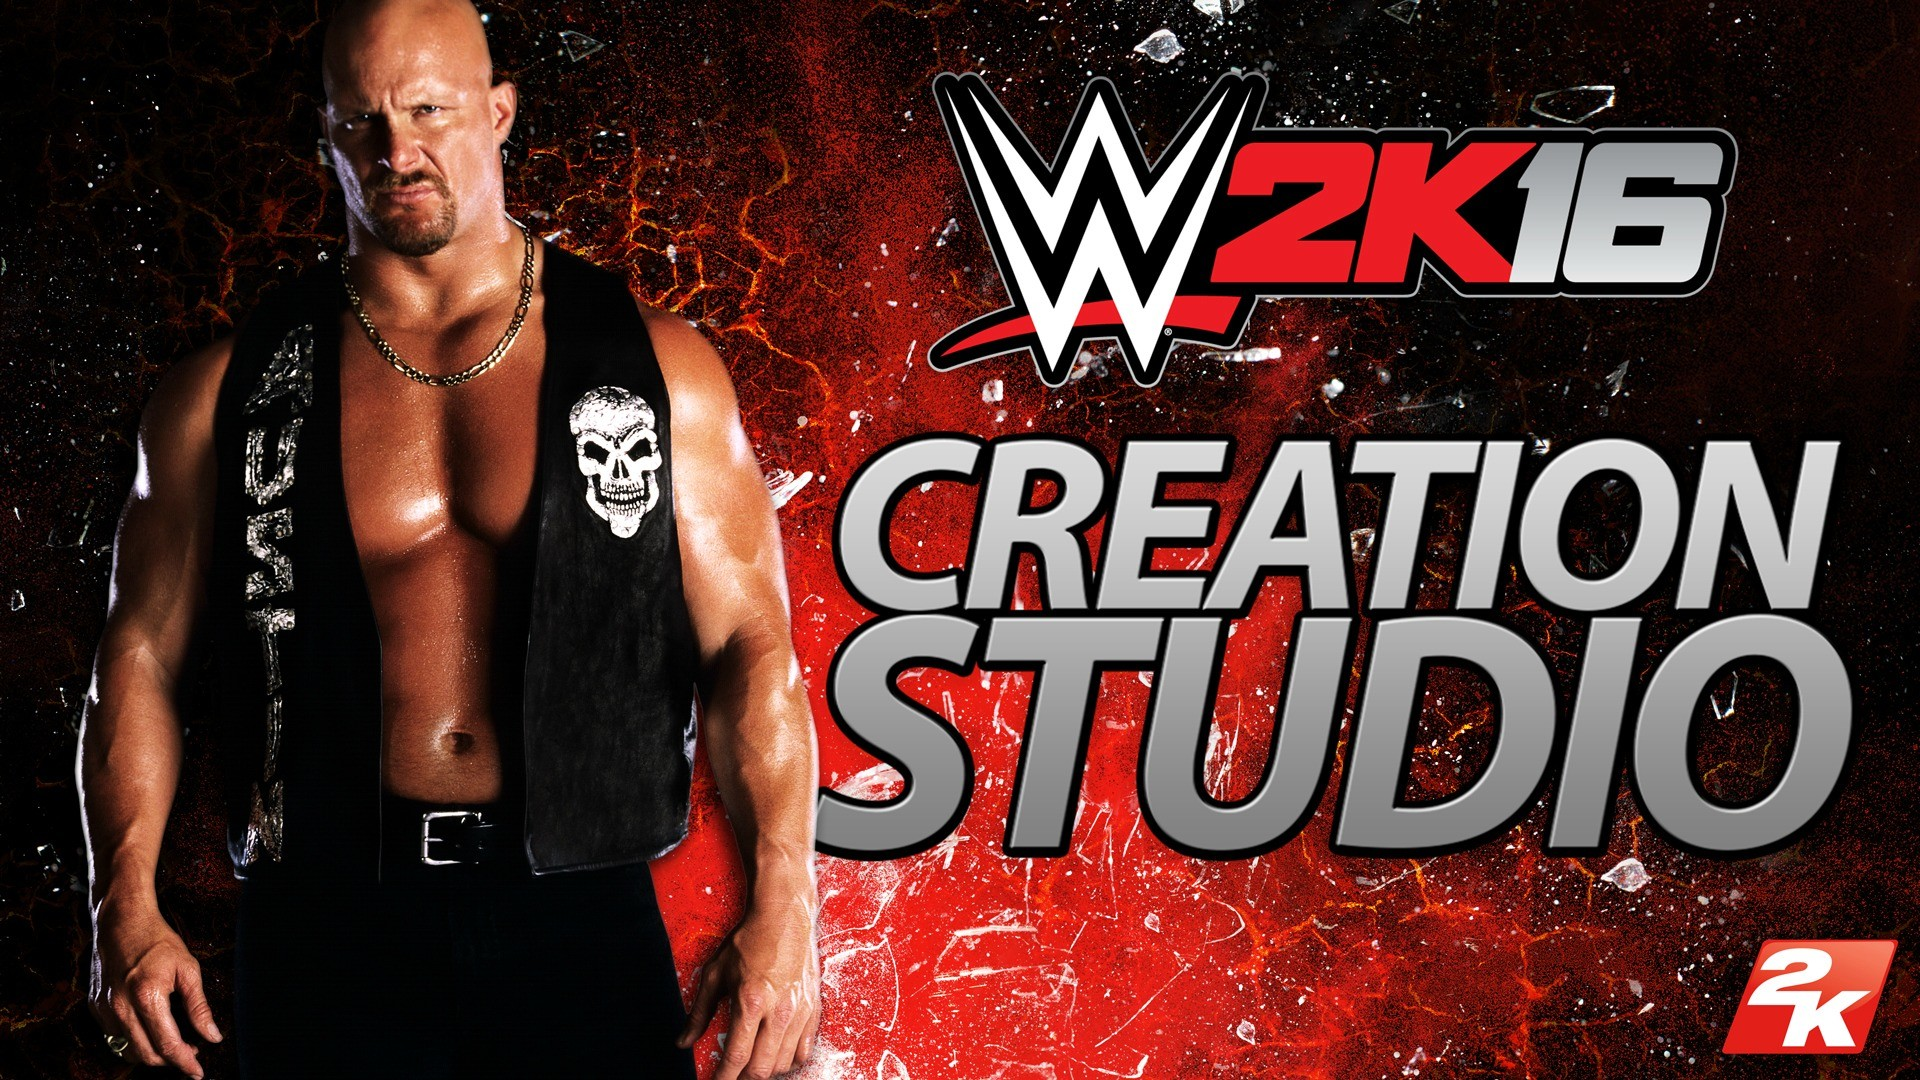 WWE 2K16 Creation Studio App is Out Now on iOS and Android – WWE 2K16  Coverage – News & Updates